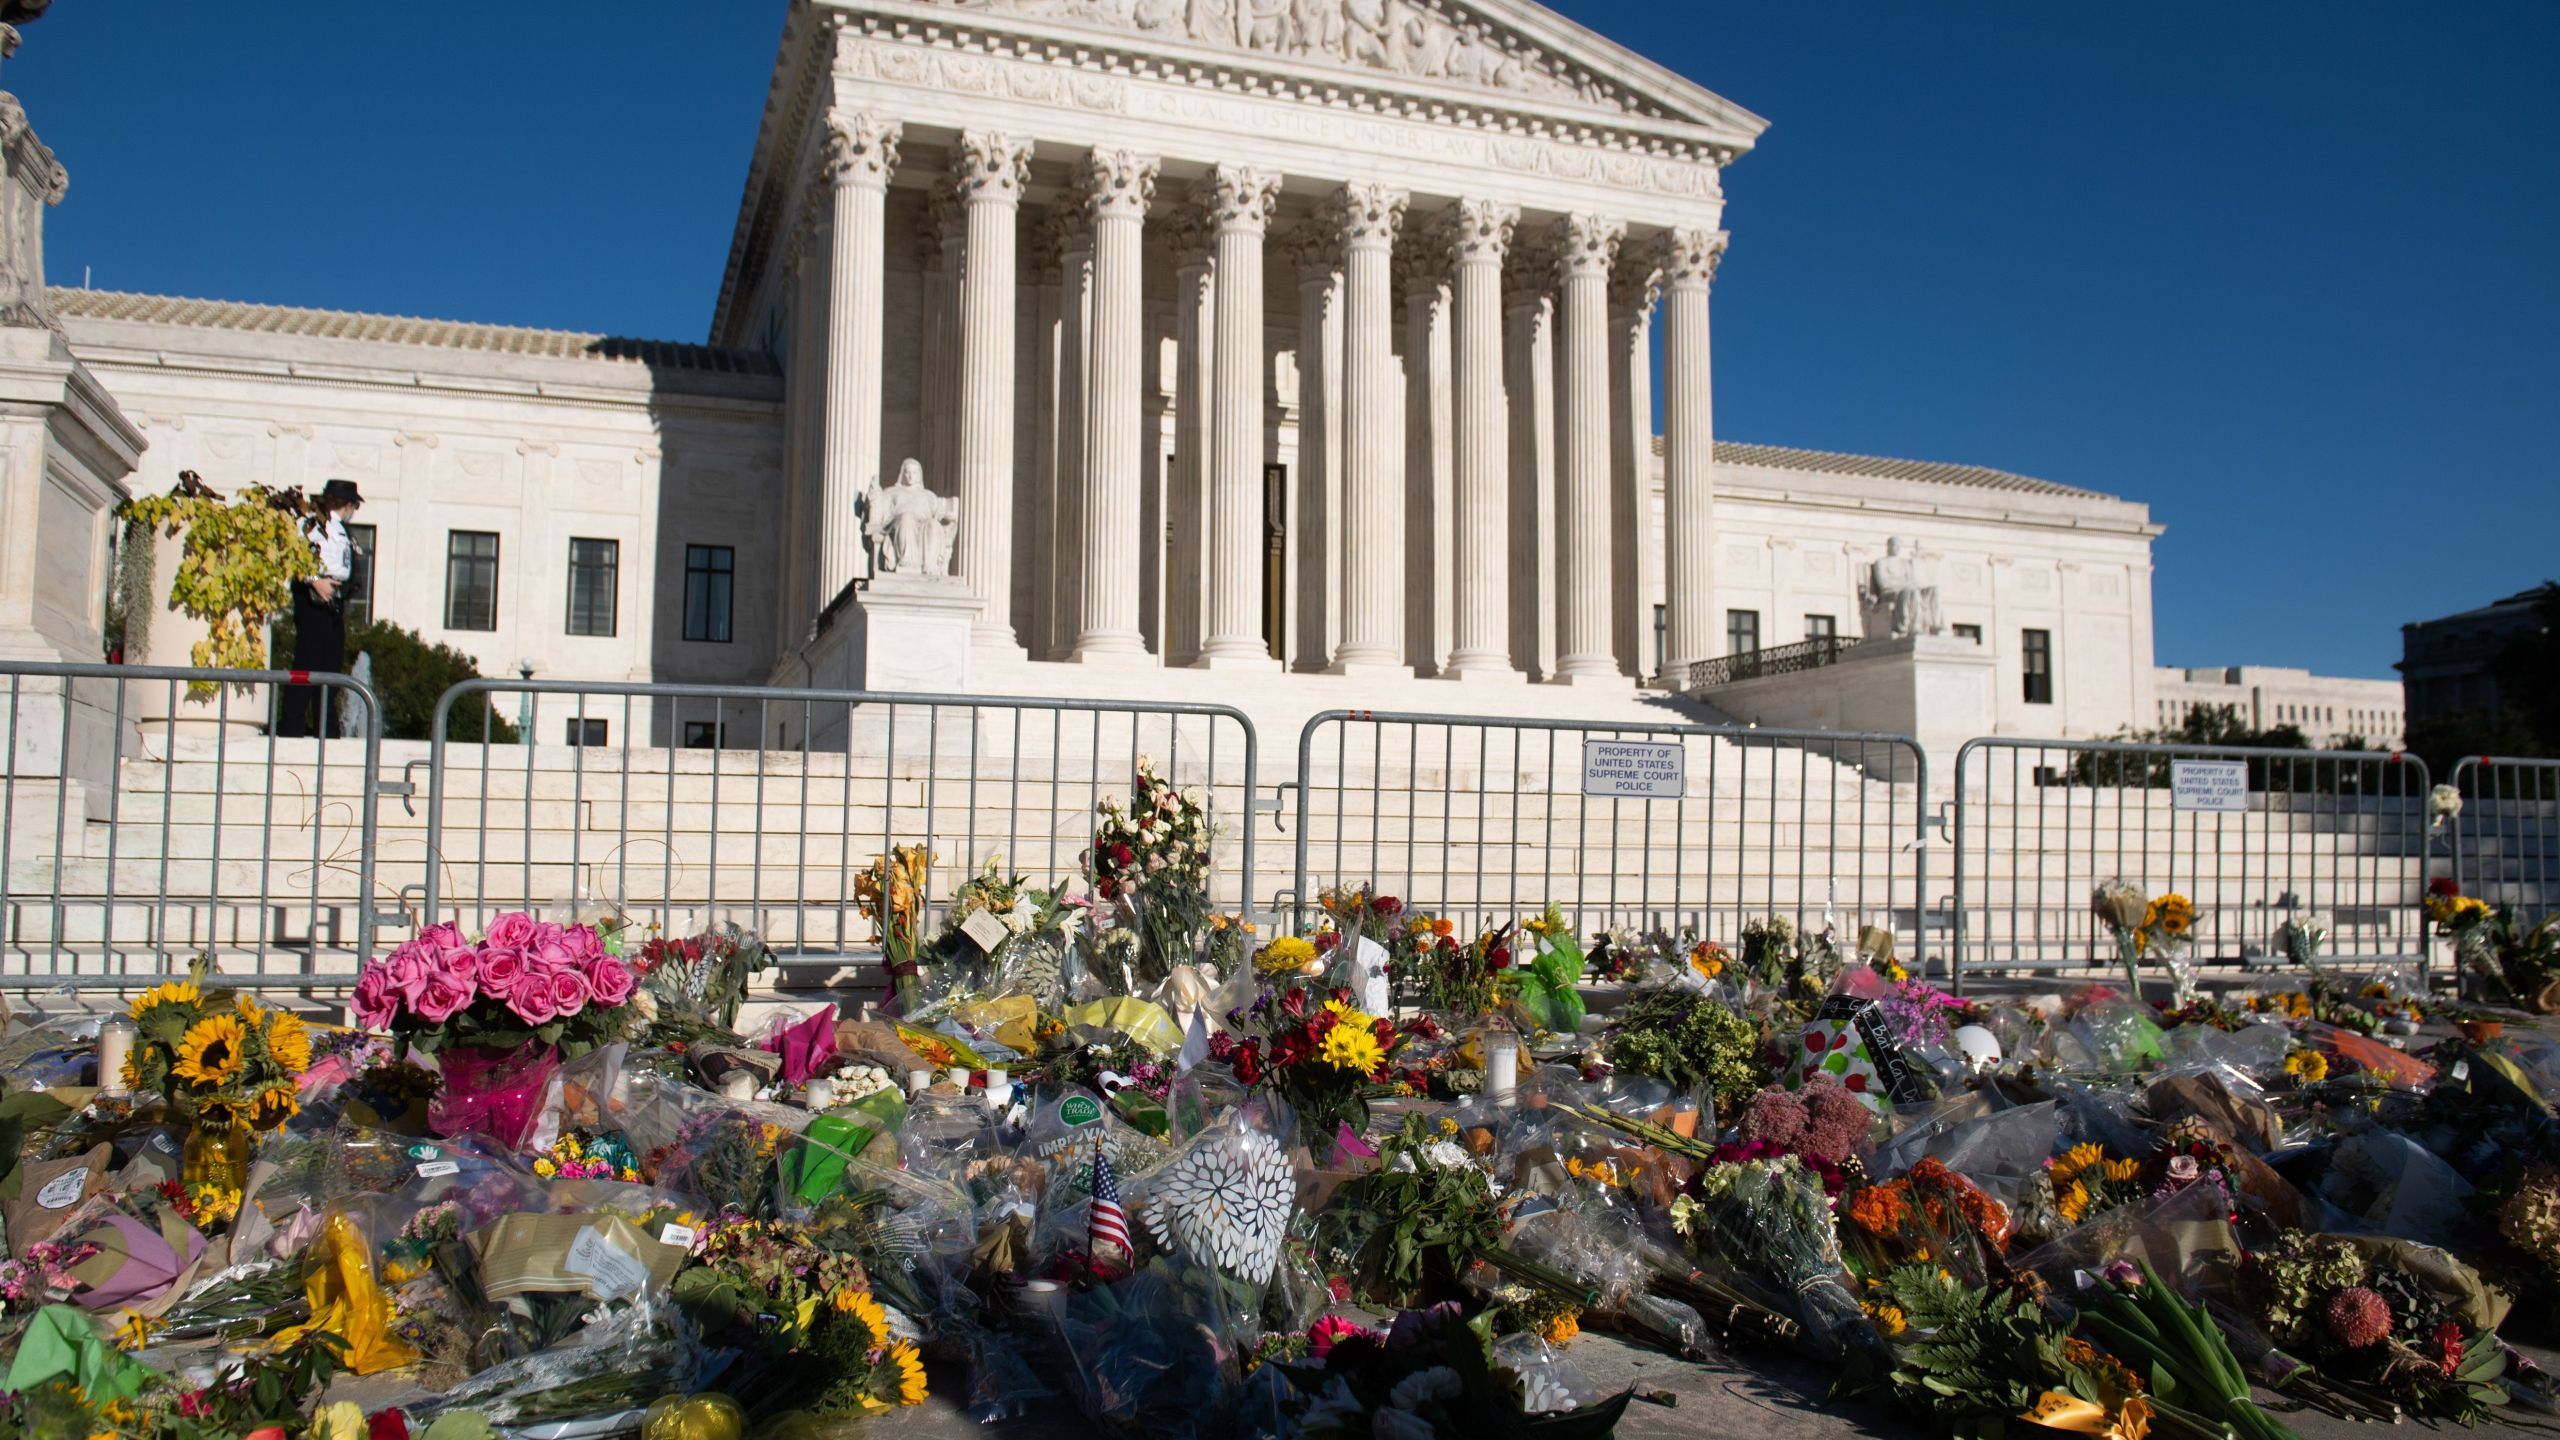 A makeshift memorial for late US Supreme Court Justice Ruth Bader Ginsburg is seen outside the US Supreme Court in Washington, DC, September 21, 2020. (Photo by SAUL LOEB/AFP via Getty Images)